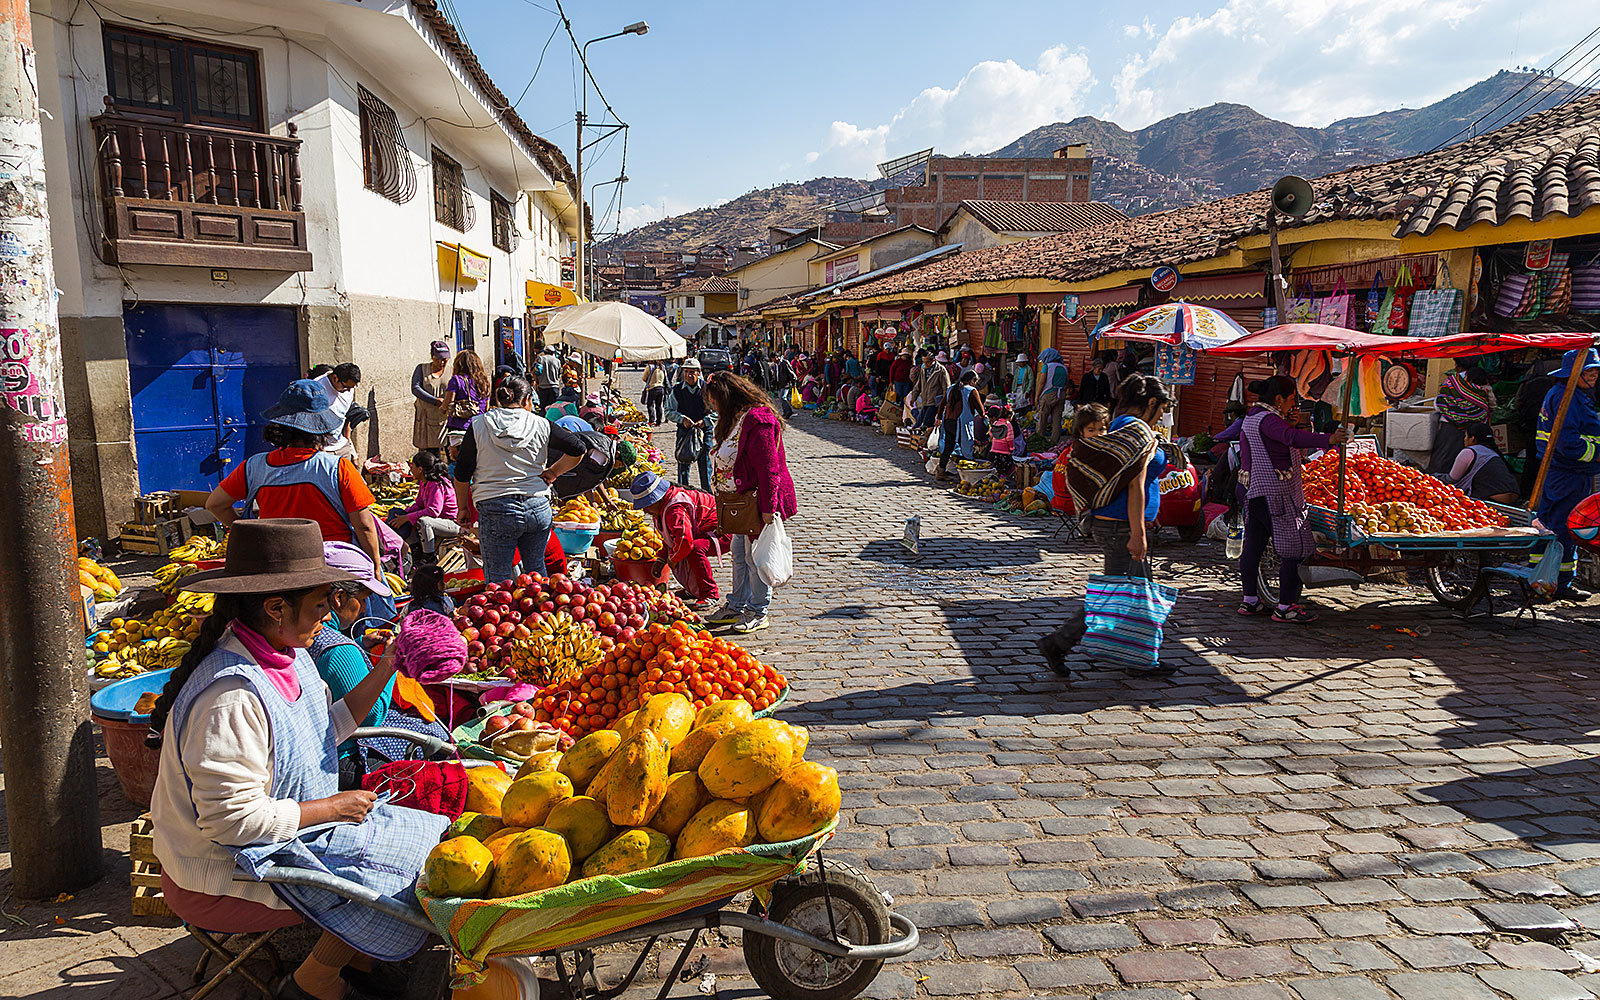 Take a food tour in Peru